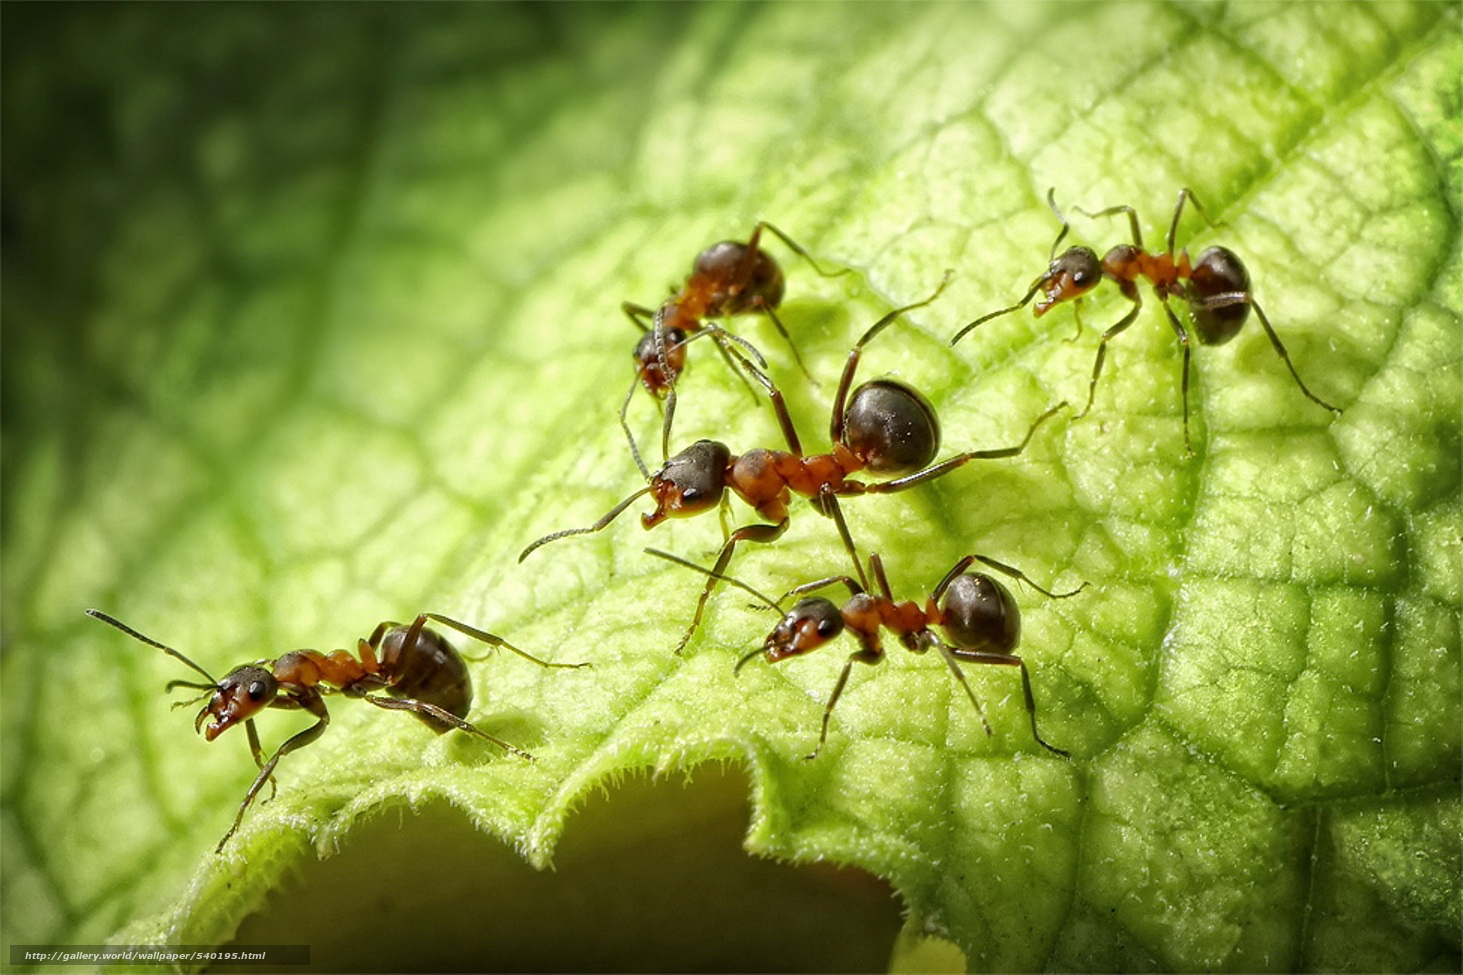 ant macro photography wallpaper - photo #37